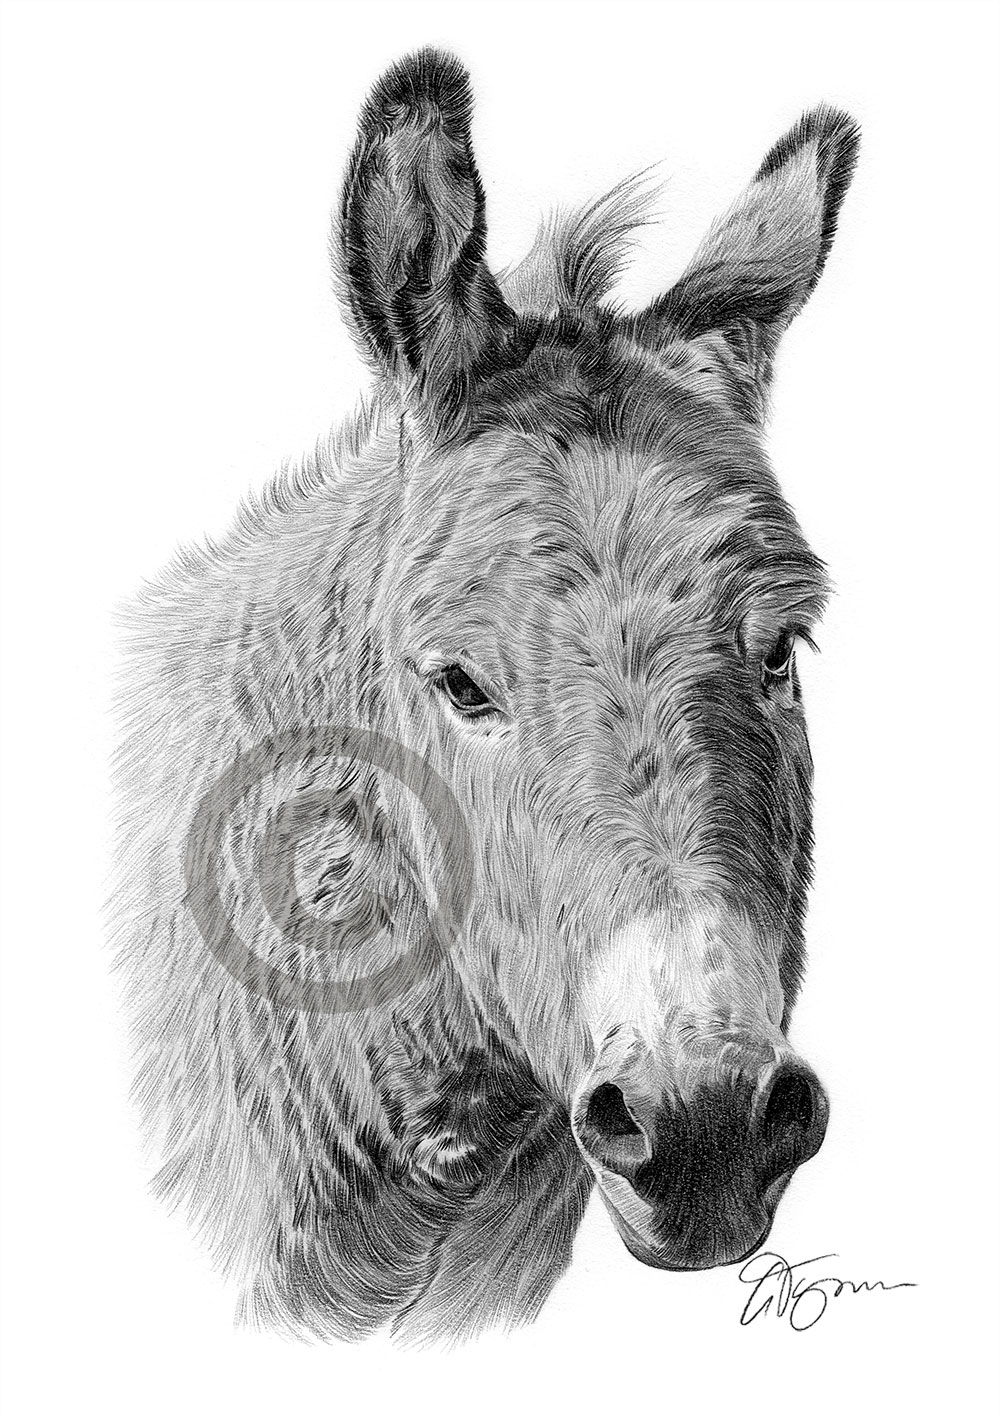 drawing of a donkey donkey pencil drawing how to sketch donkey using pencils drawing donkey a of